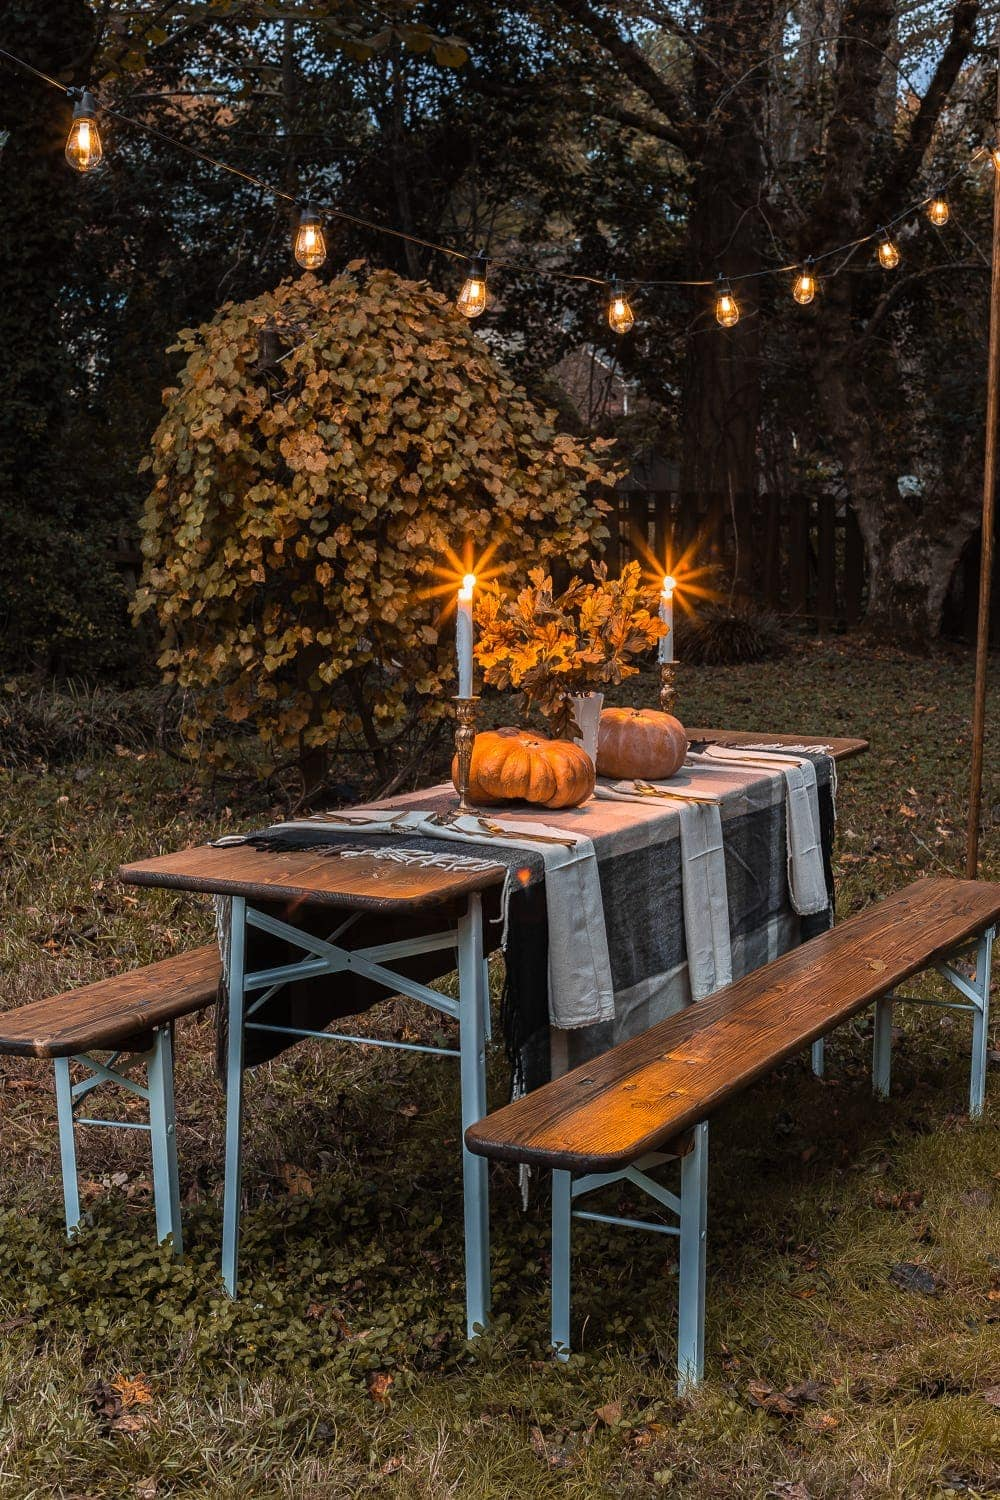 Beer garden table with string lights for fall